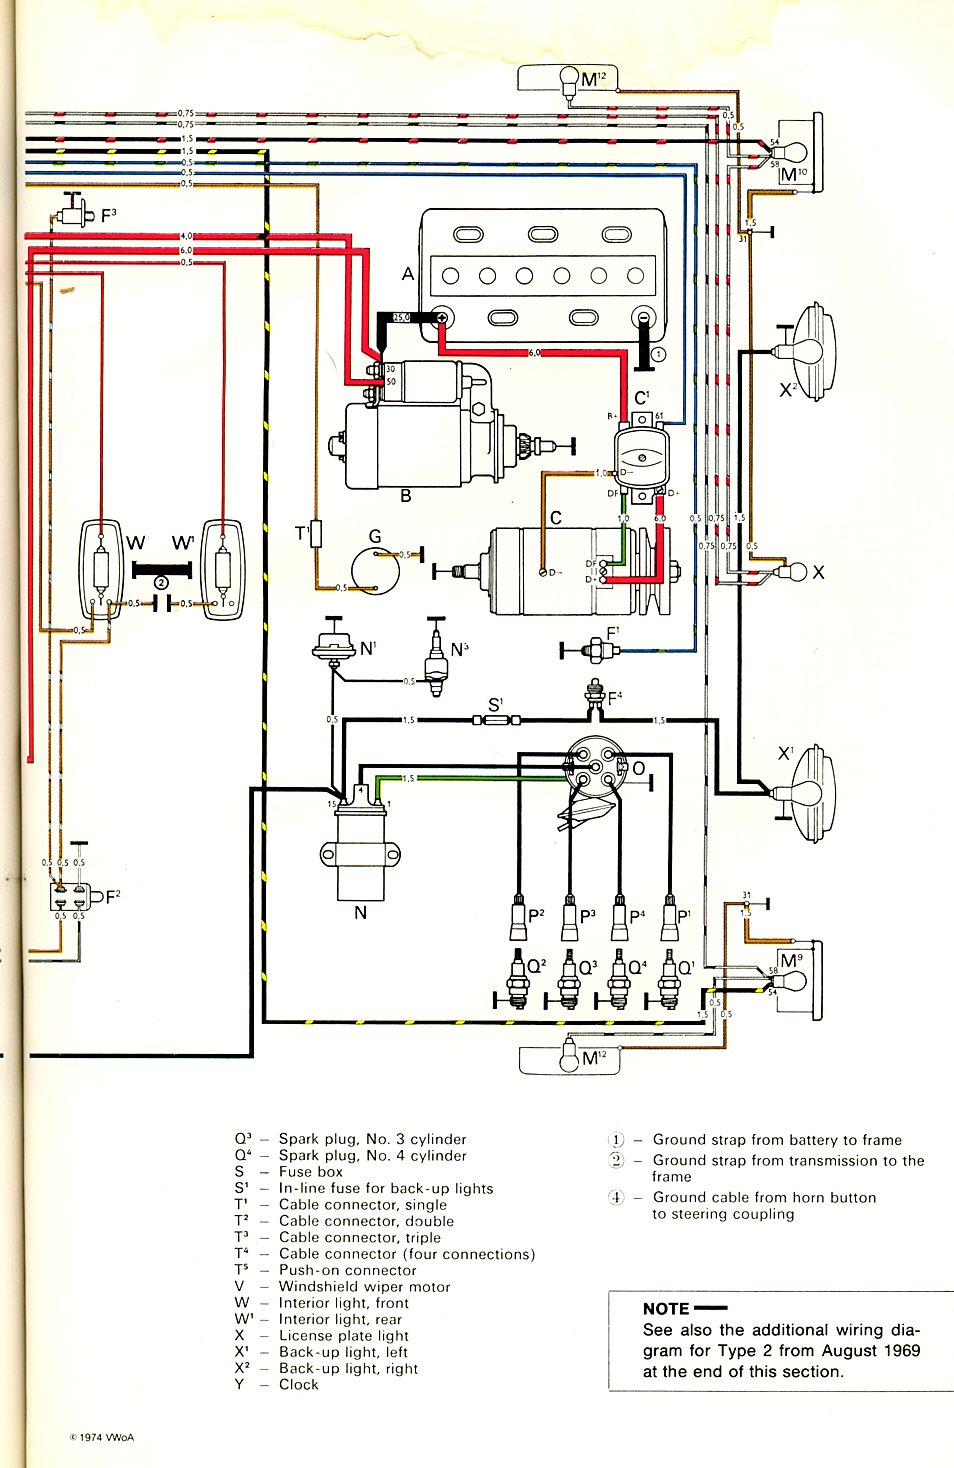 baybus_70b thesamba com type 2 wiring diagrams vw wiring diagram at gsmportal.co